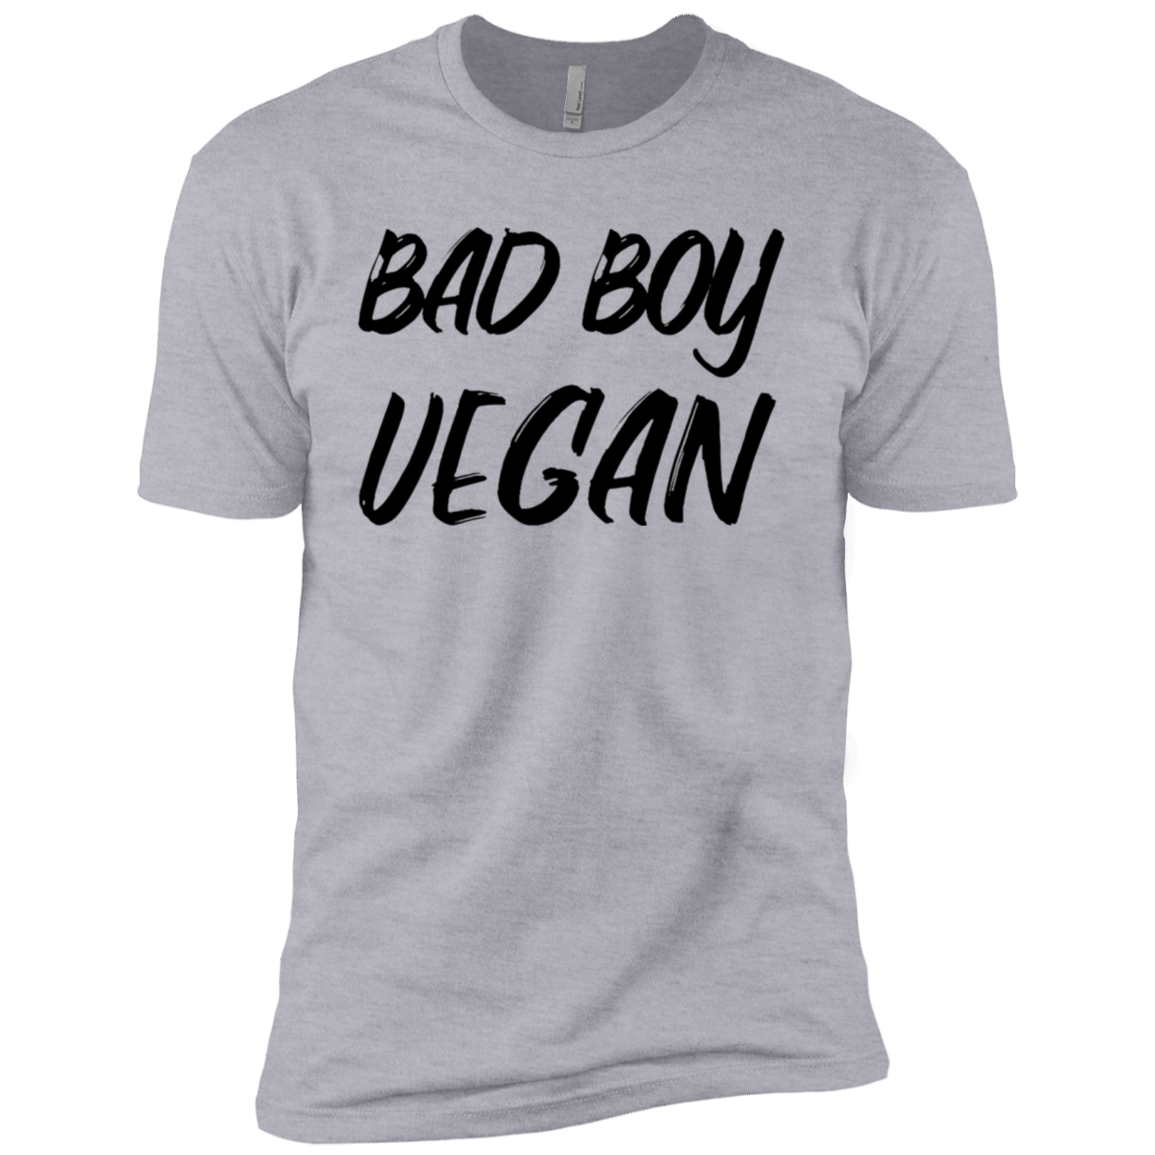 Bad Boy Vegan Men's Classic Tee - Trendy Tees